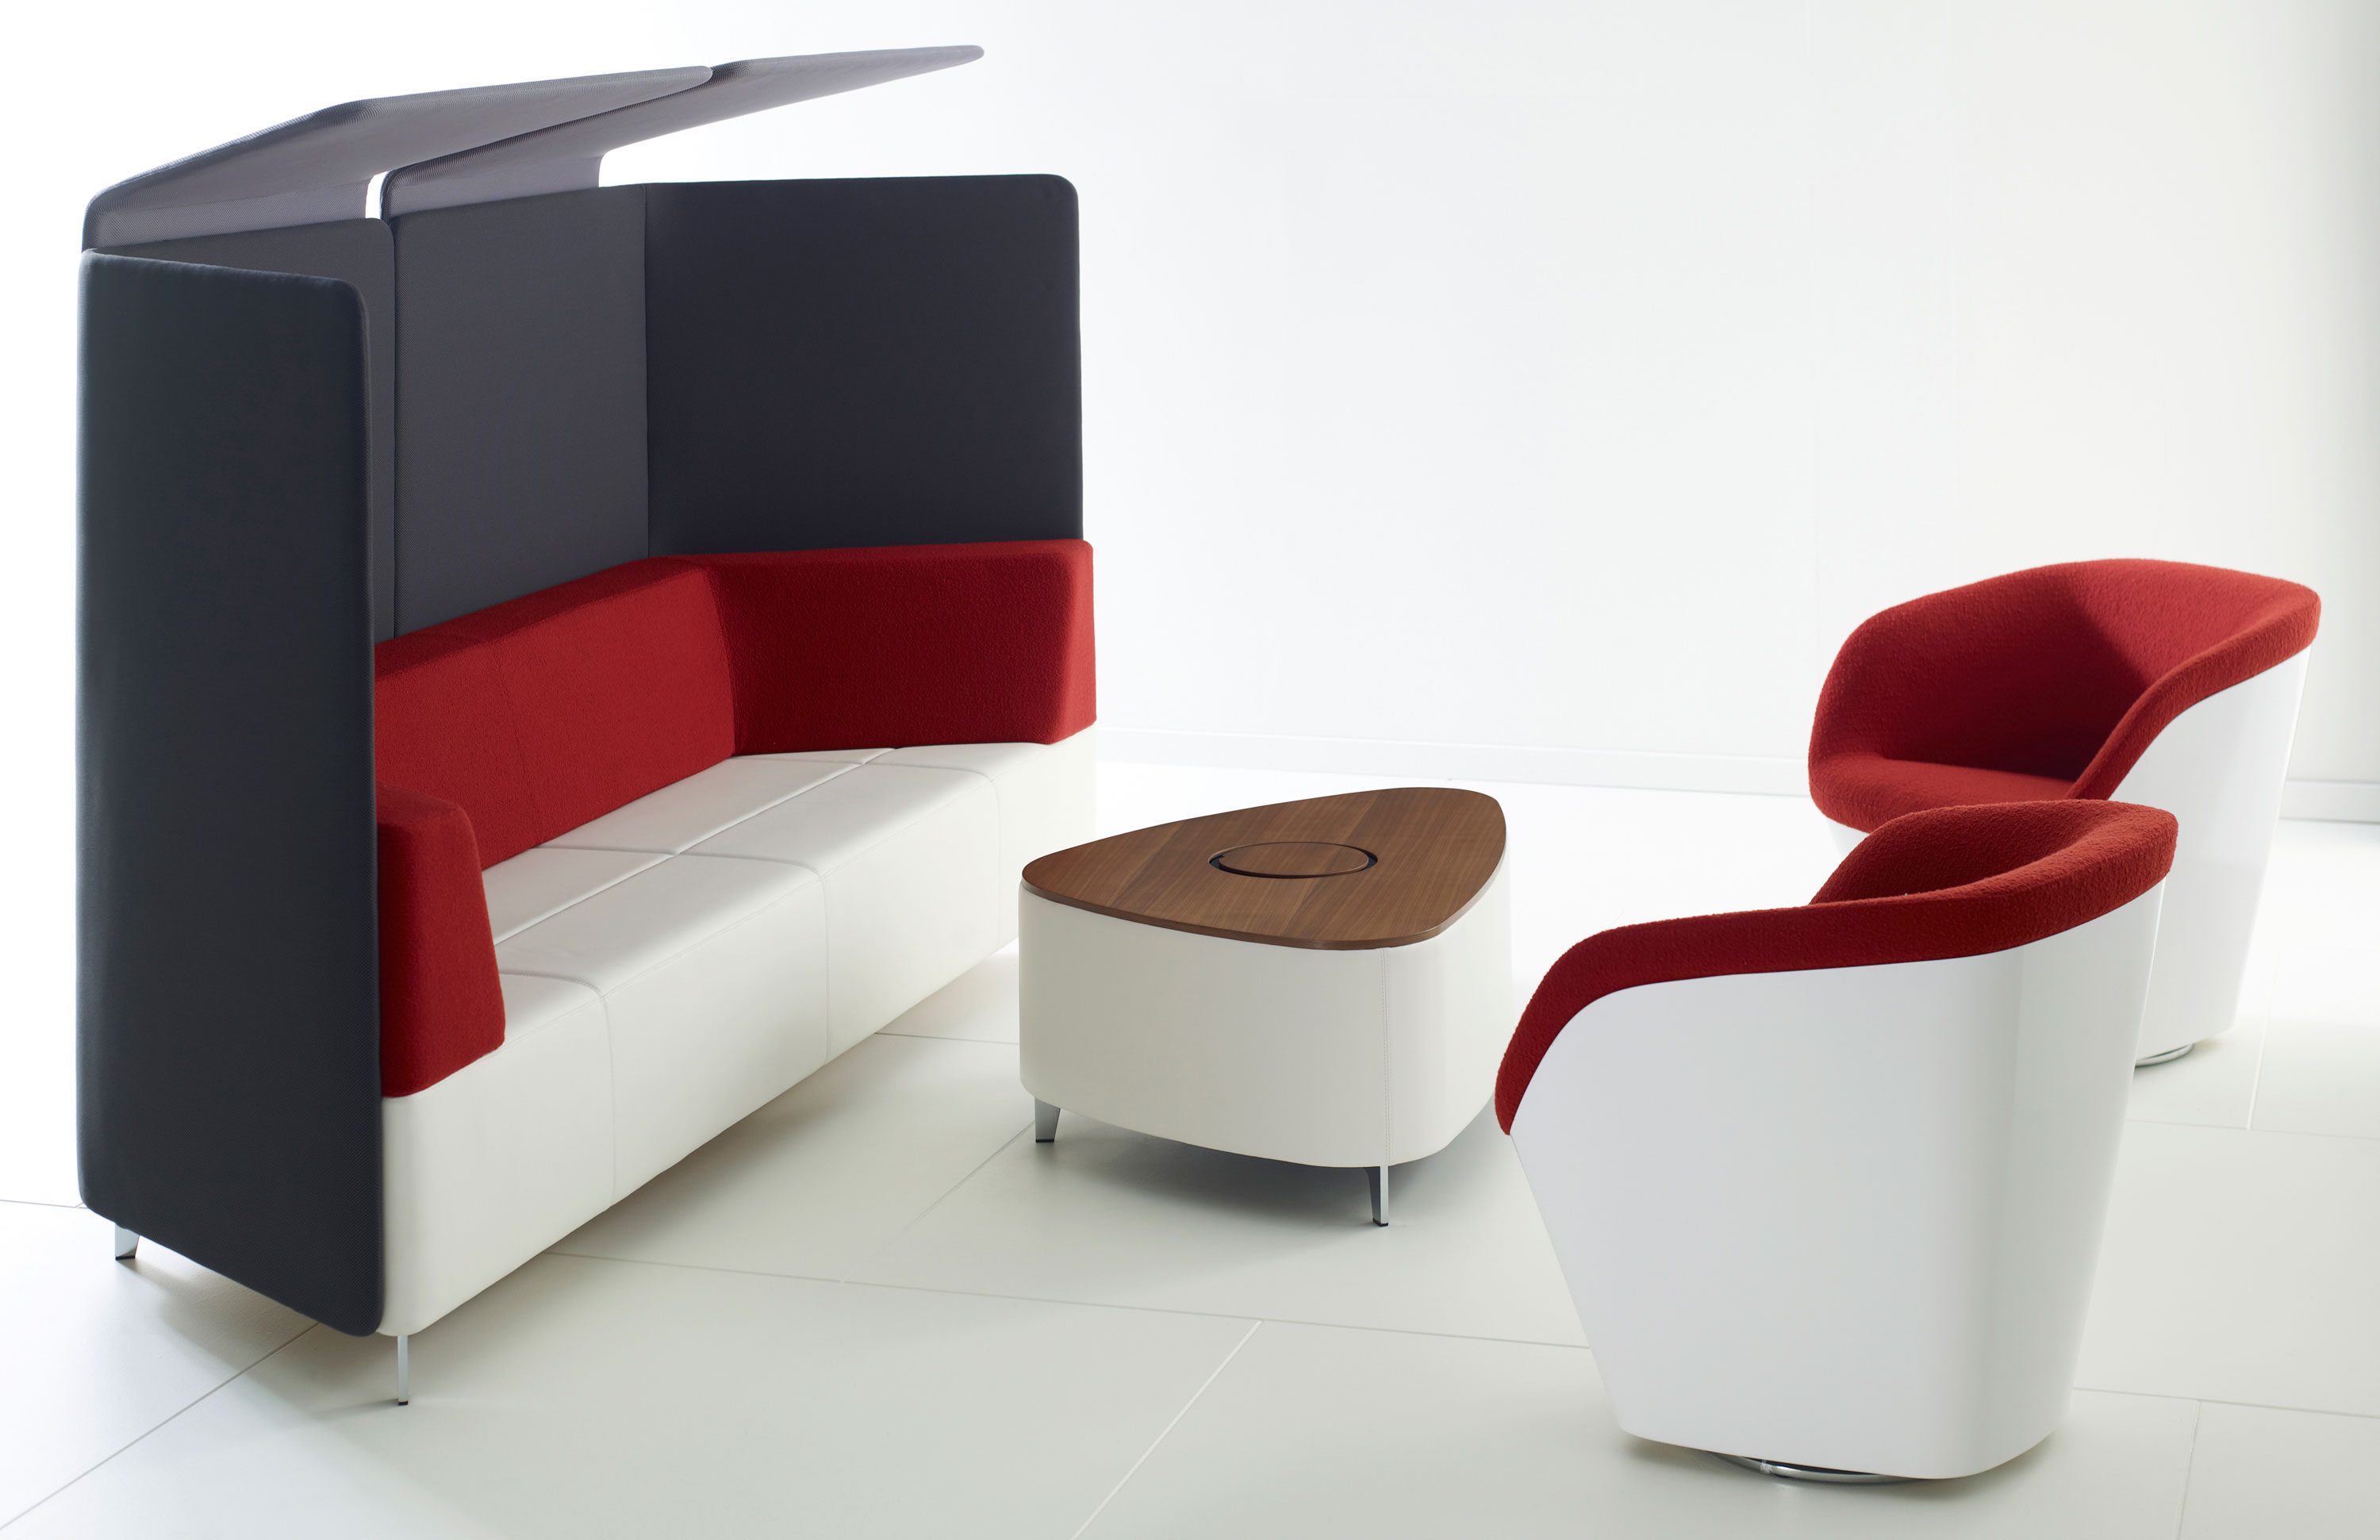 Acoustic furniture more privacy less noise